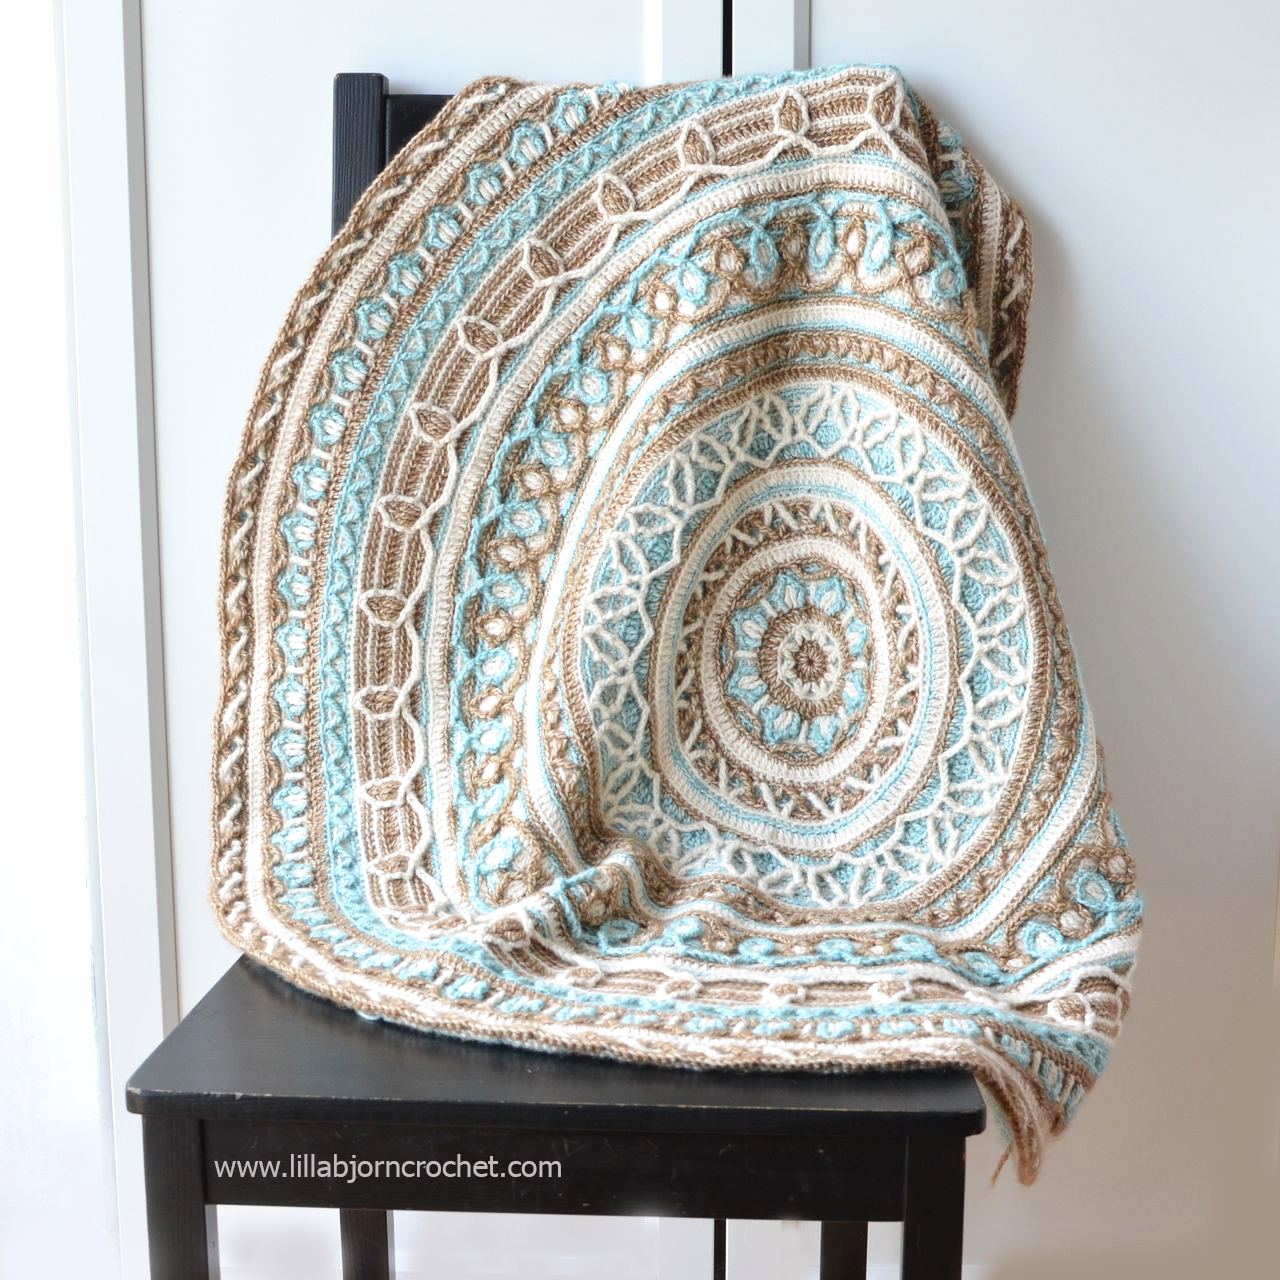 Joana's Mandala and Border - overlay crochet pattern by Lilla Bjorn Crochet